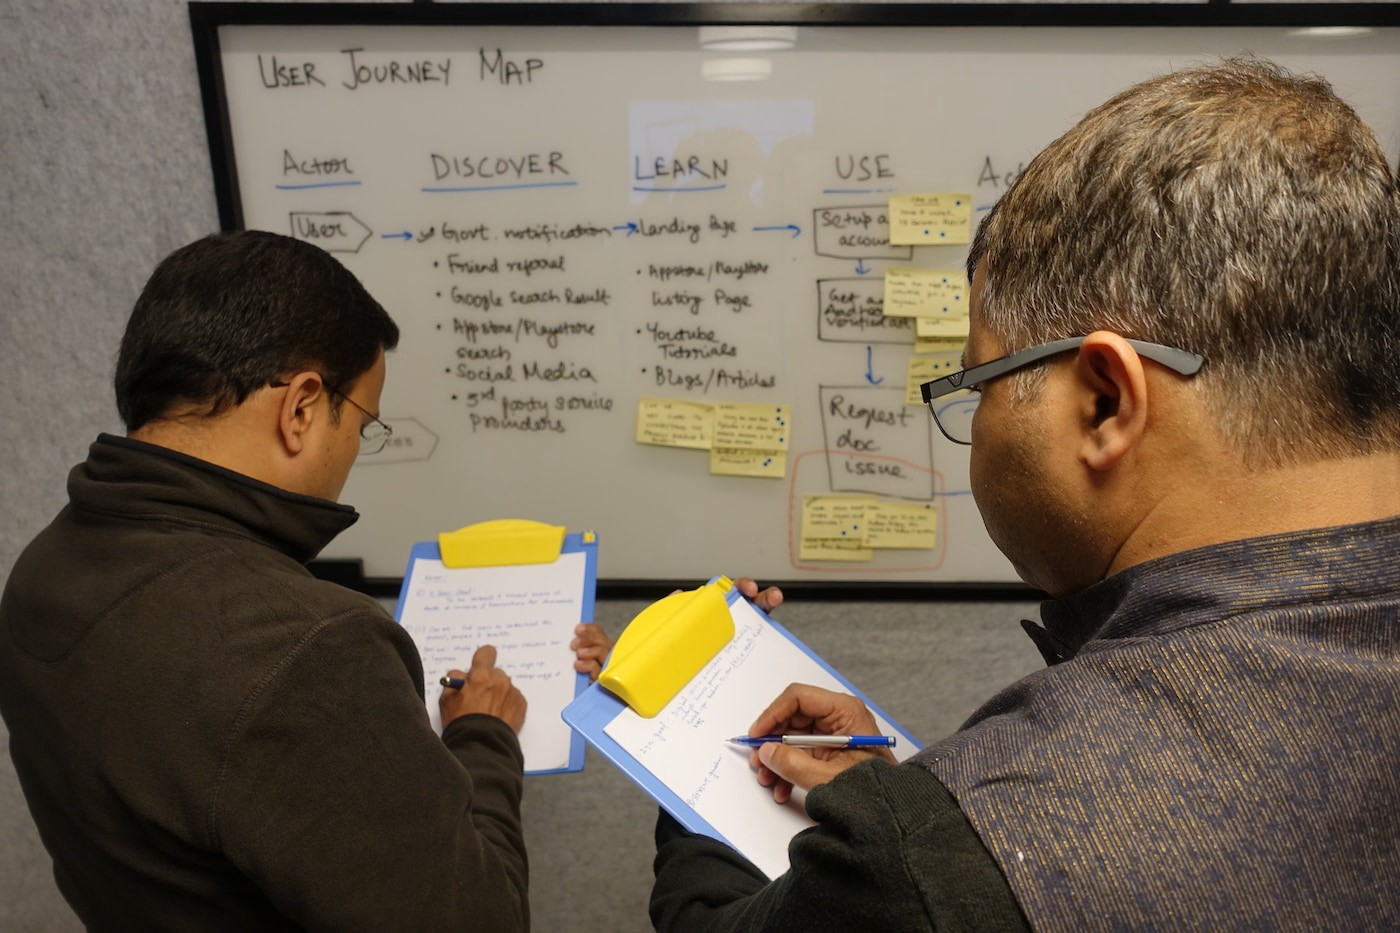 2 people with clipboards looking at a user journey map during a Design Sprint